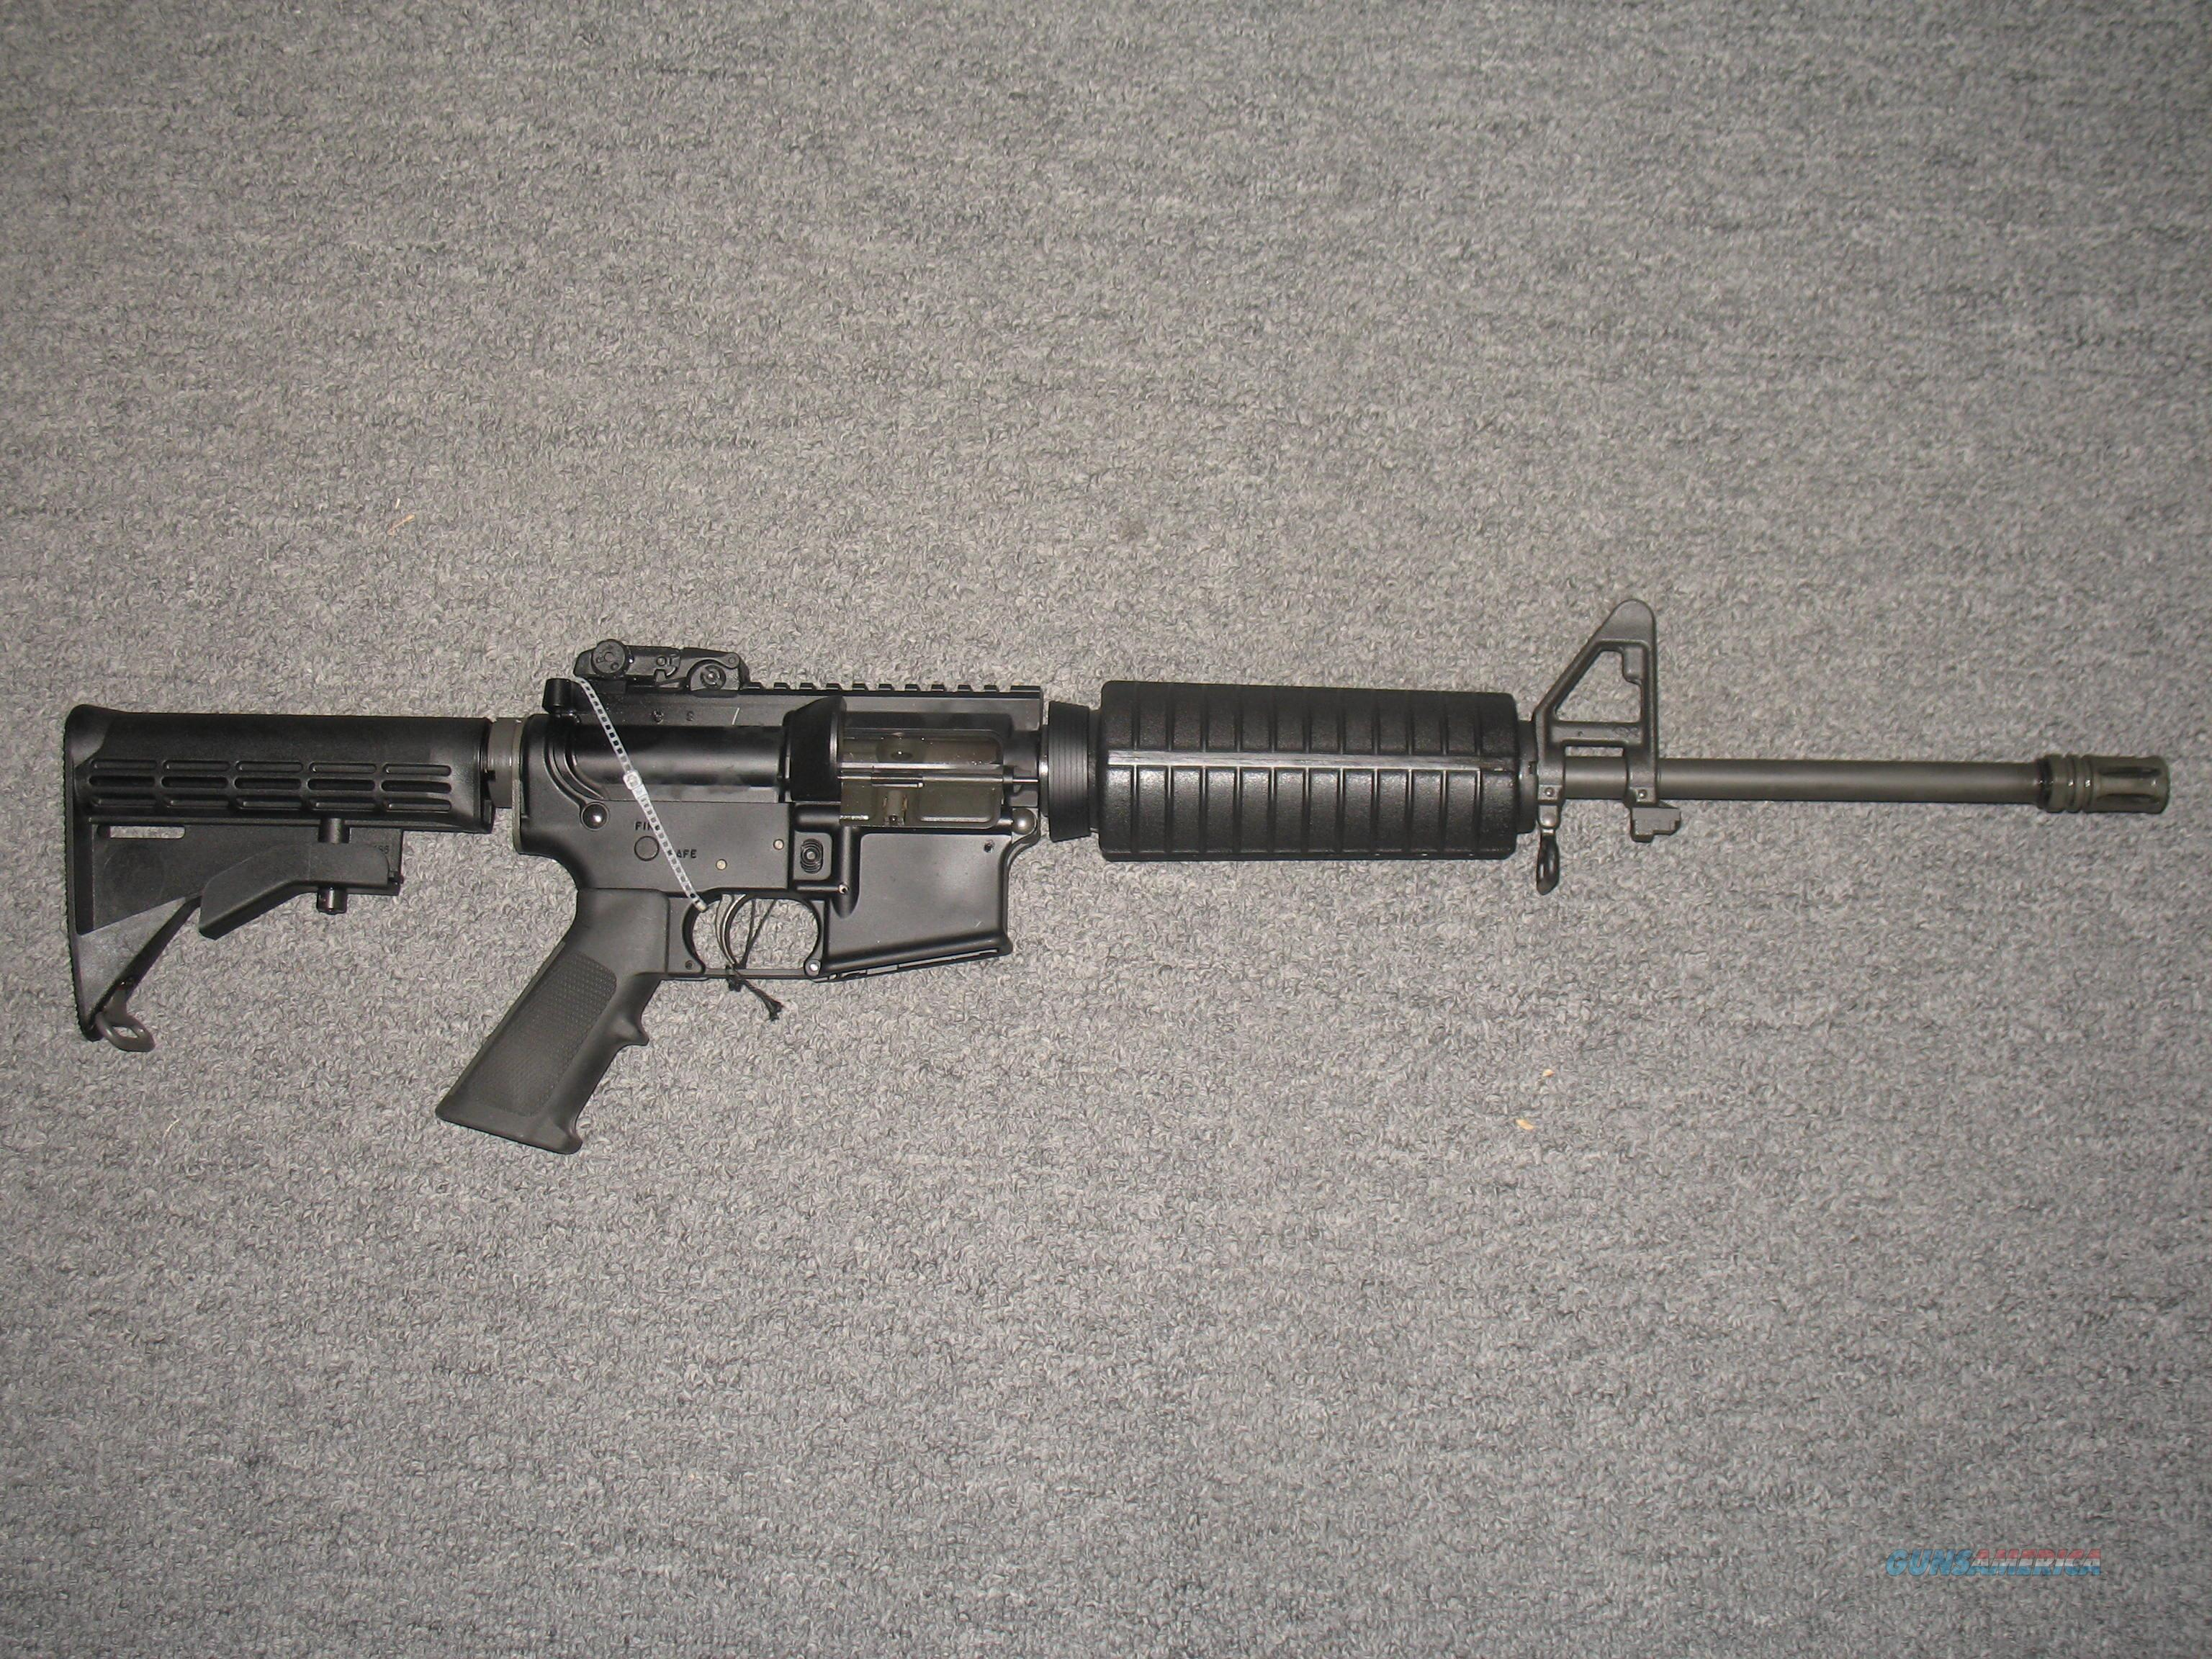 Colt AR-15 9mm (AR6951)  Guns > Rifles > Colt Military/Tactical Rifles